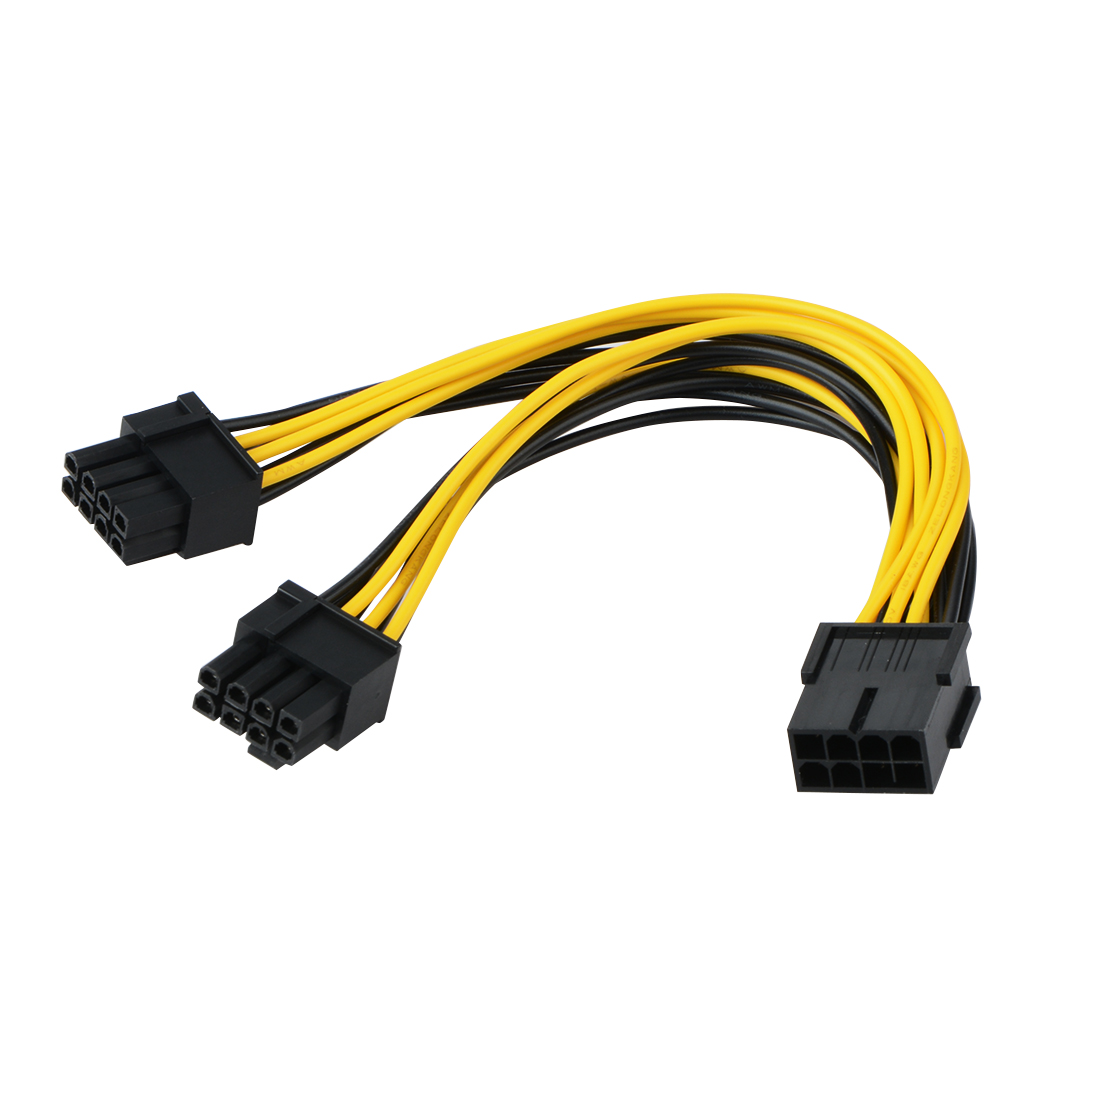 PCI-E PCIE 8 <font><b>Pin</b></font> Female Adapter To Dual Port 8P <font><b>6</b></font>+<font><b>2</b></font> Position Male Connector GPU Graphics Video Card Power <font><b>Extension</b></font> <font><b>Cable</b></font> image